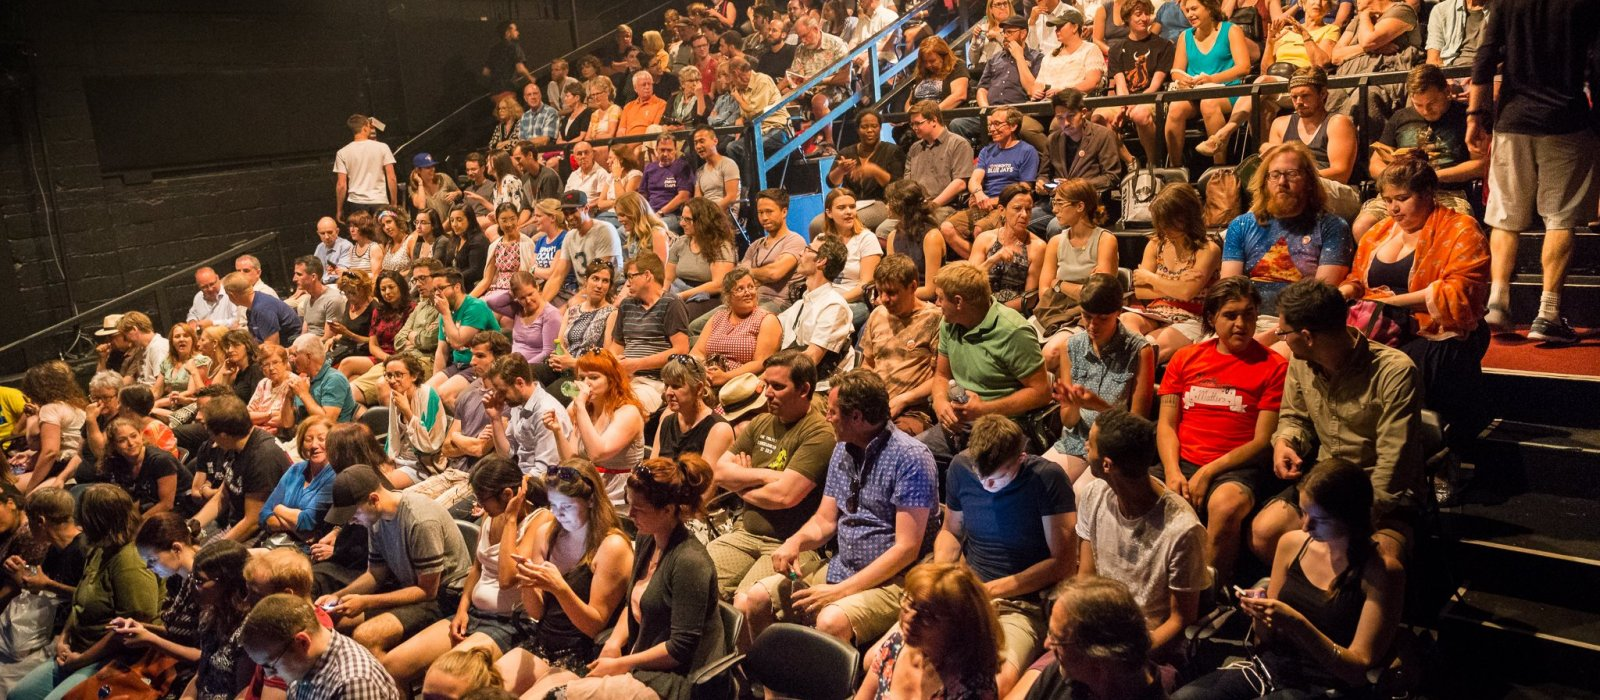 A sold-out show at Fringe 2016.